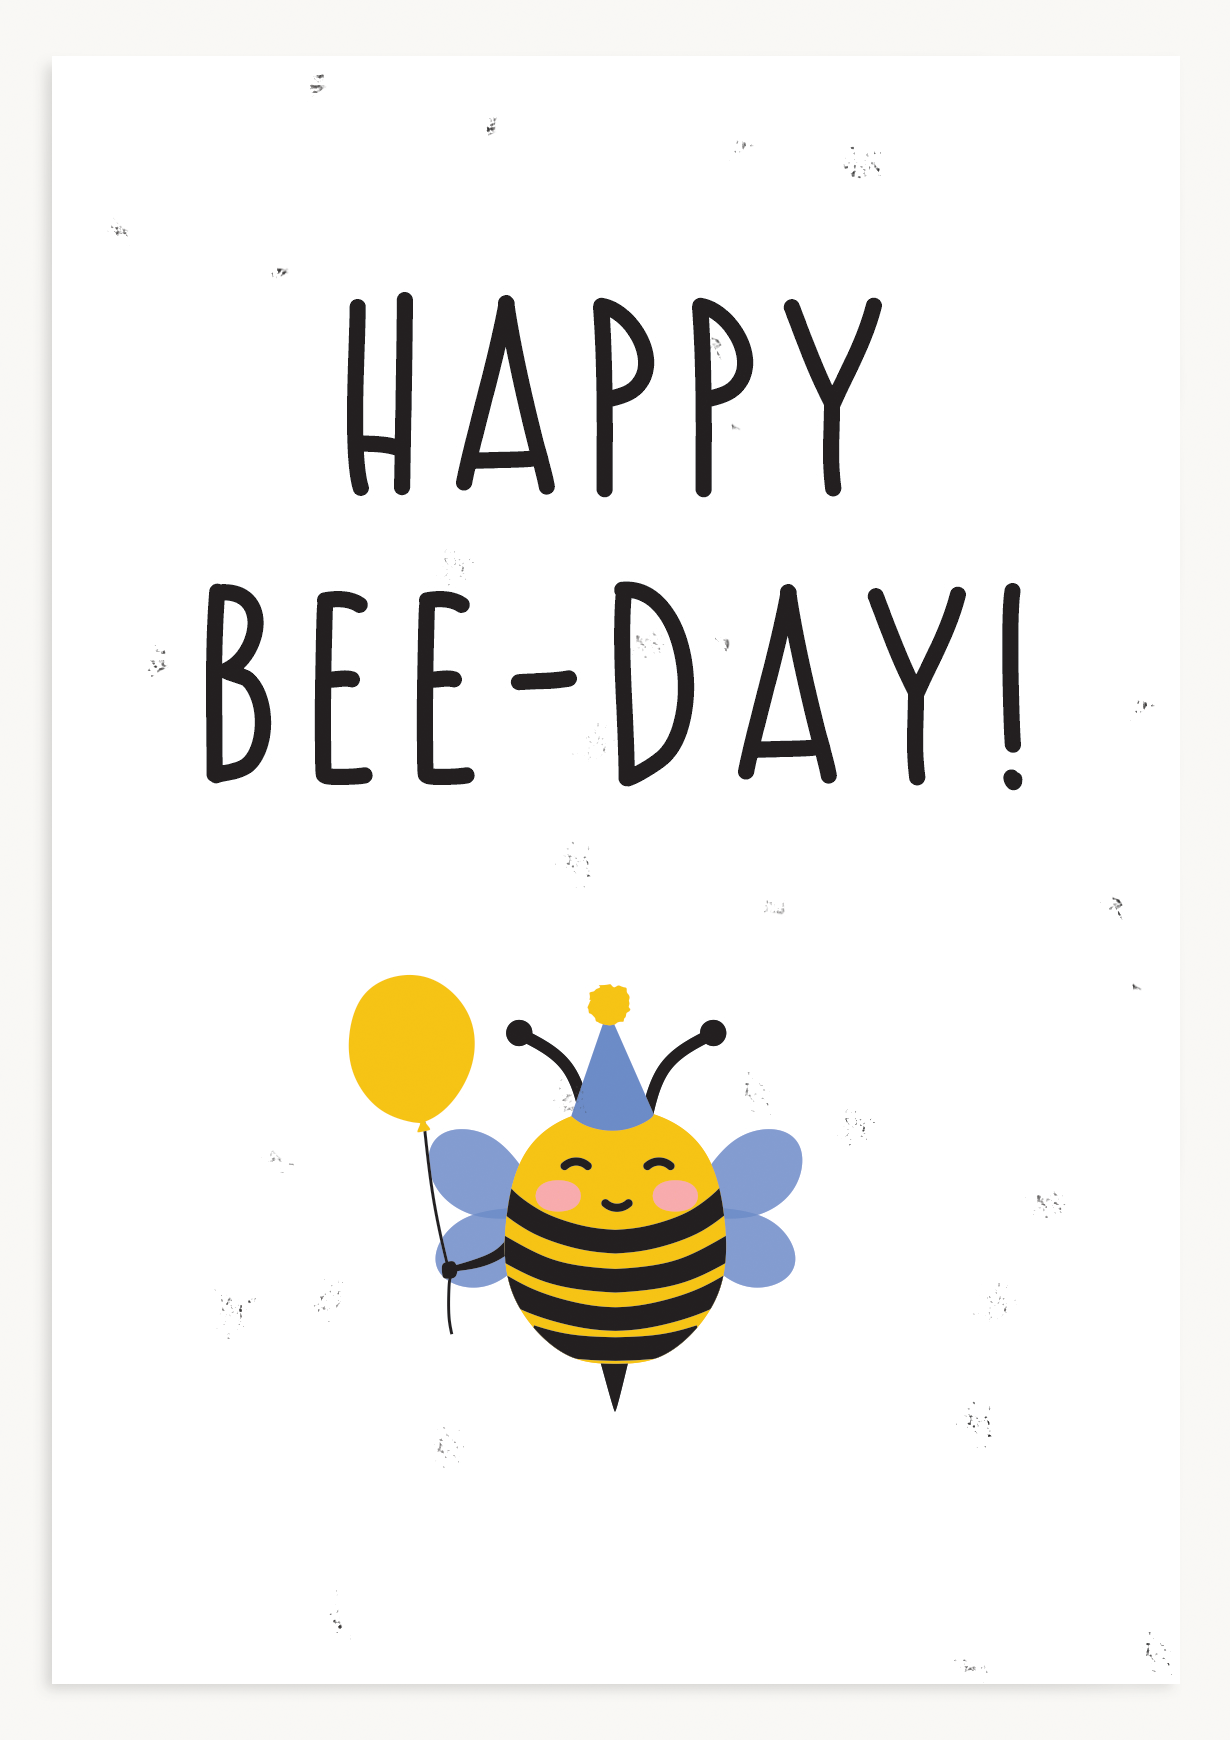 Happy beeday!